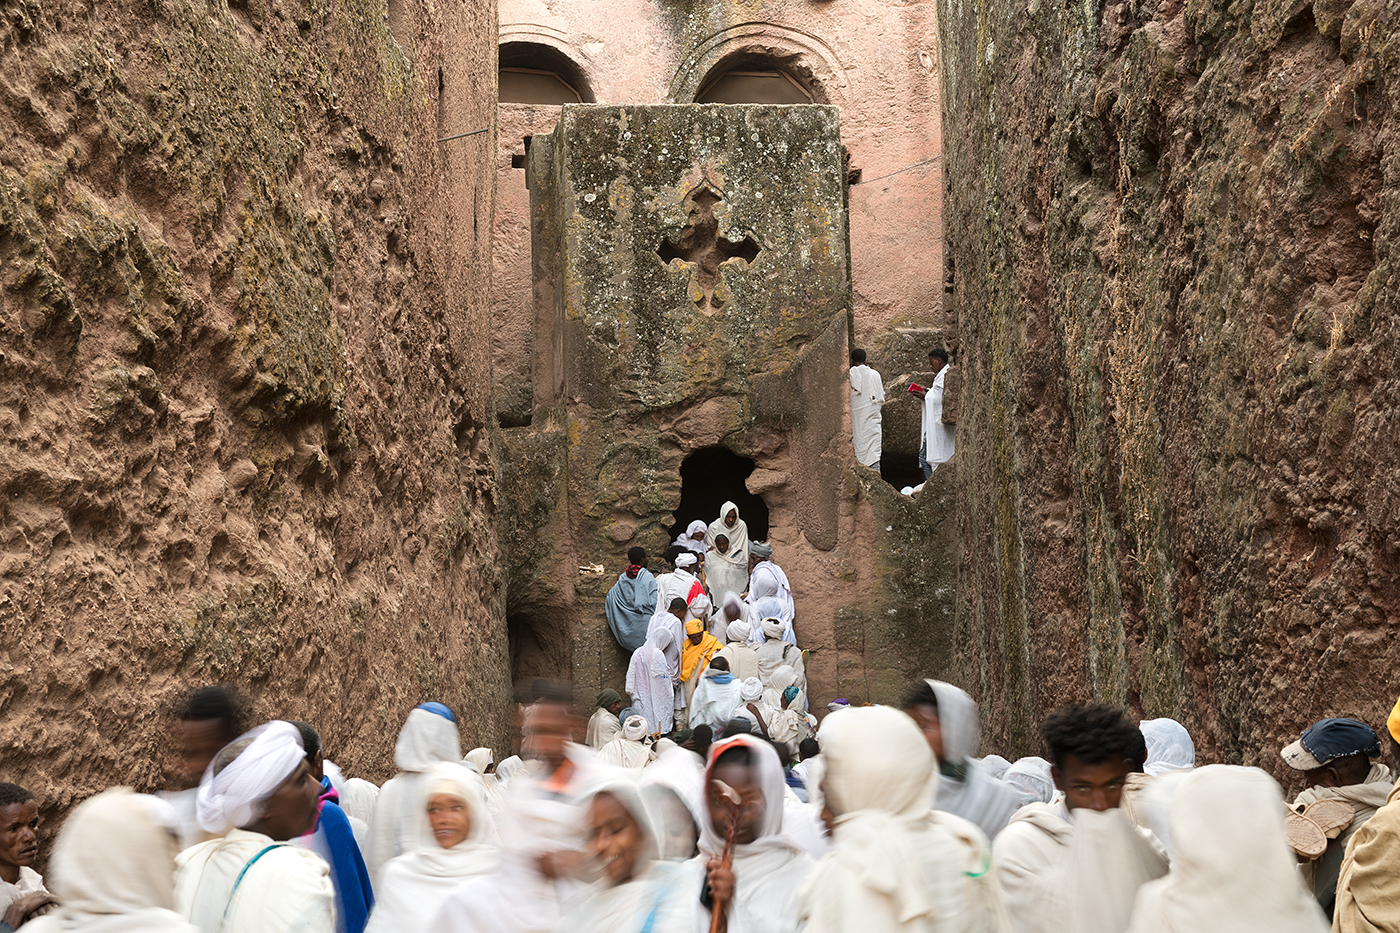 Pilgrims descend from the Tomb of Adam.